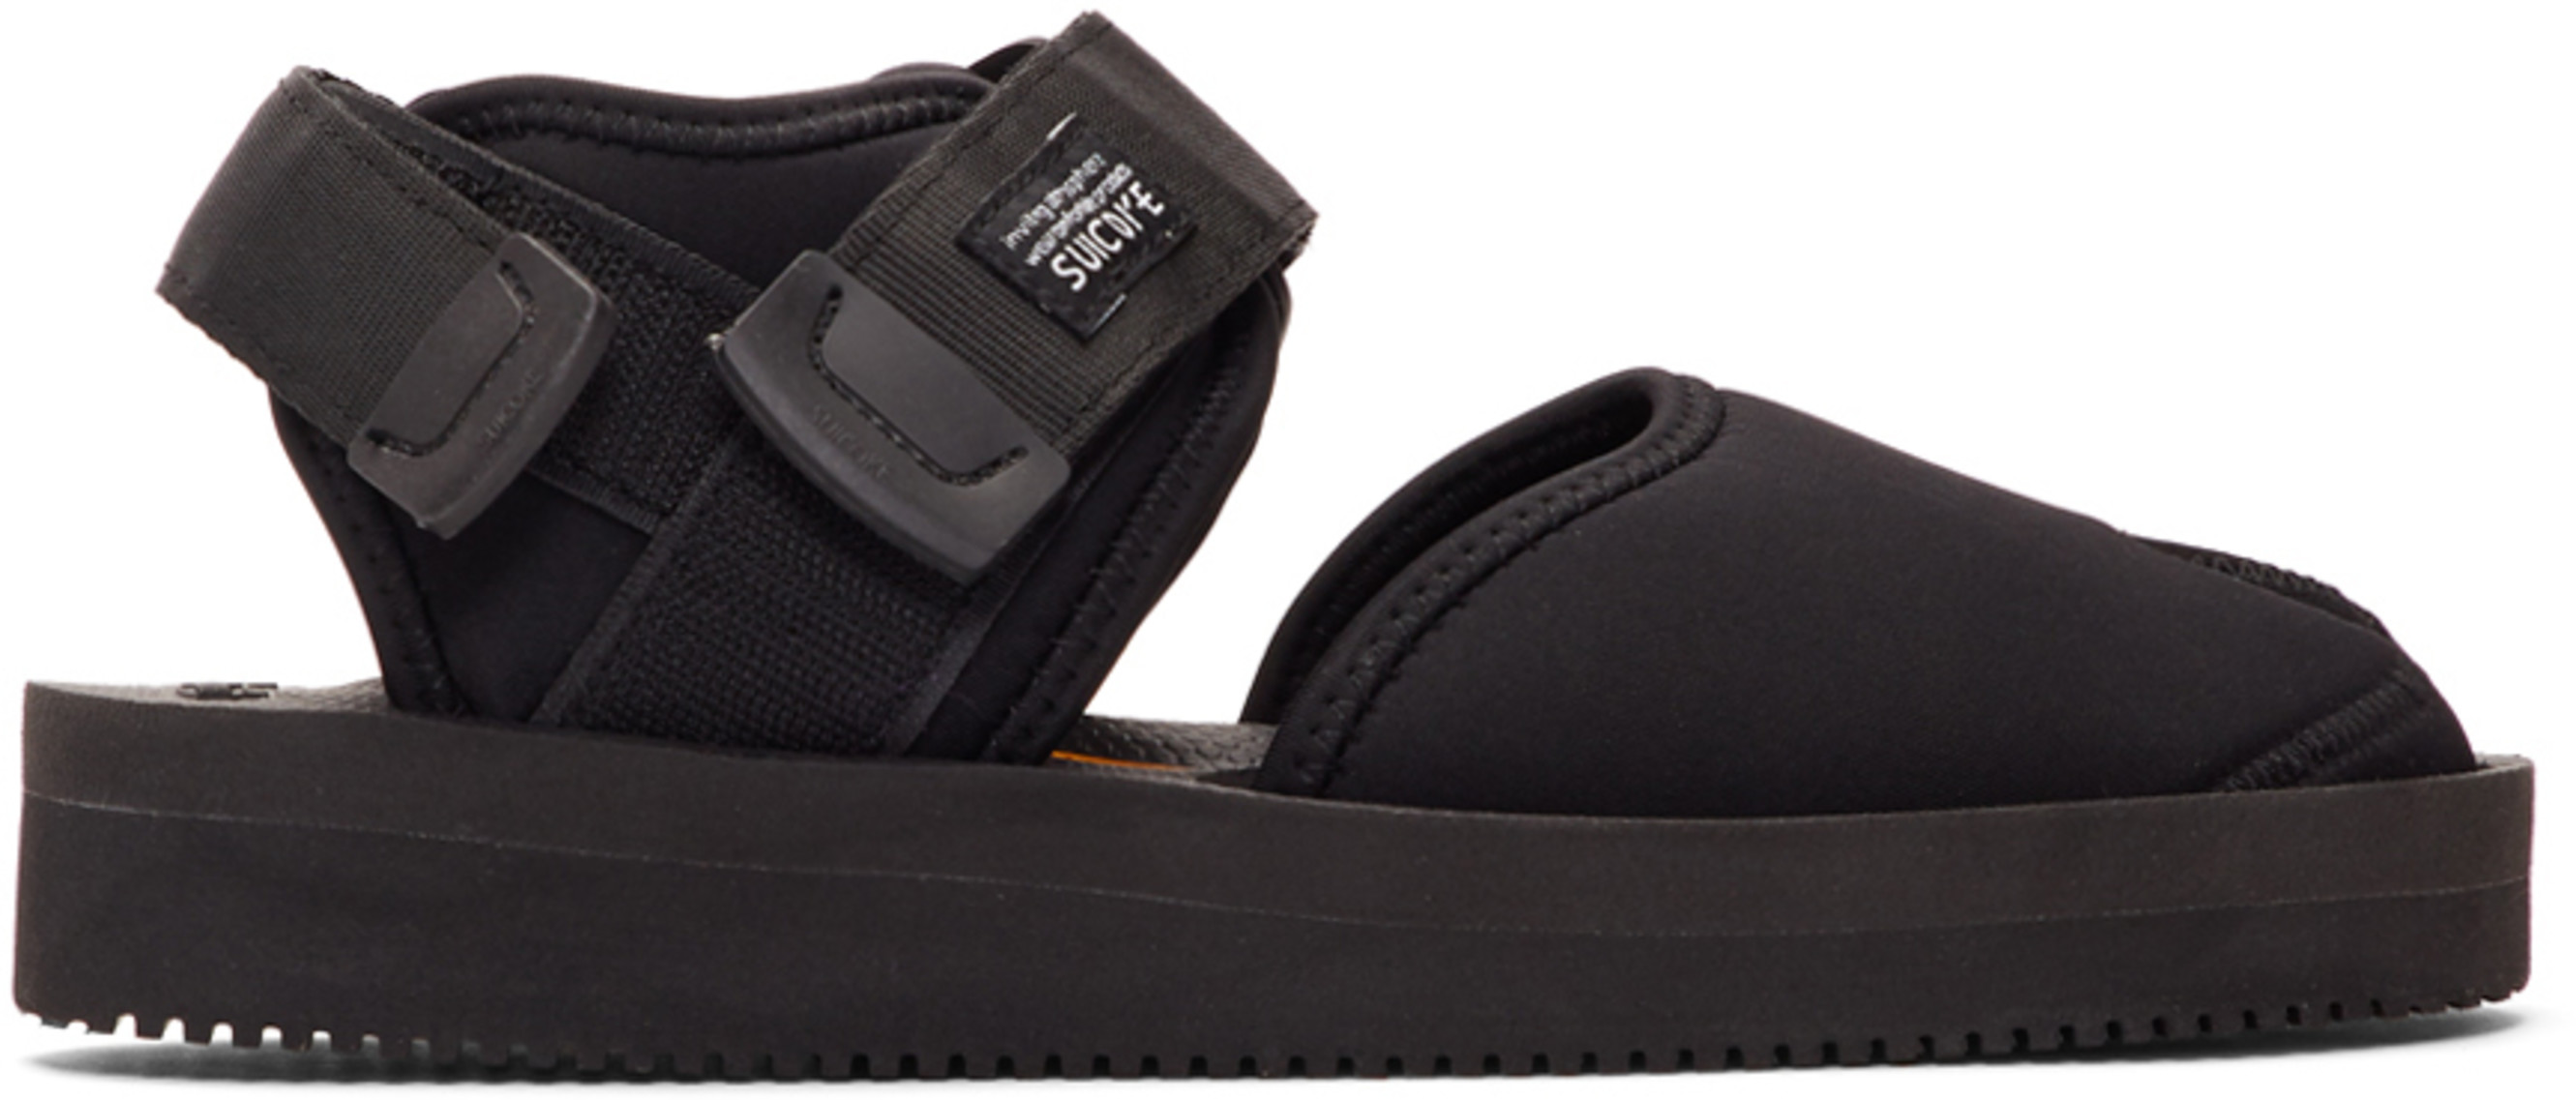 ebbbae6ab79 Suicoke for Women SS19 Collection